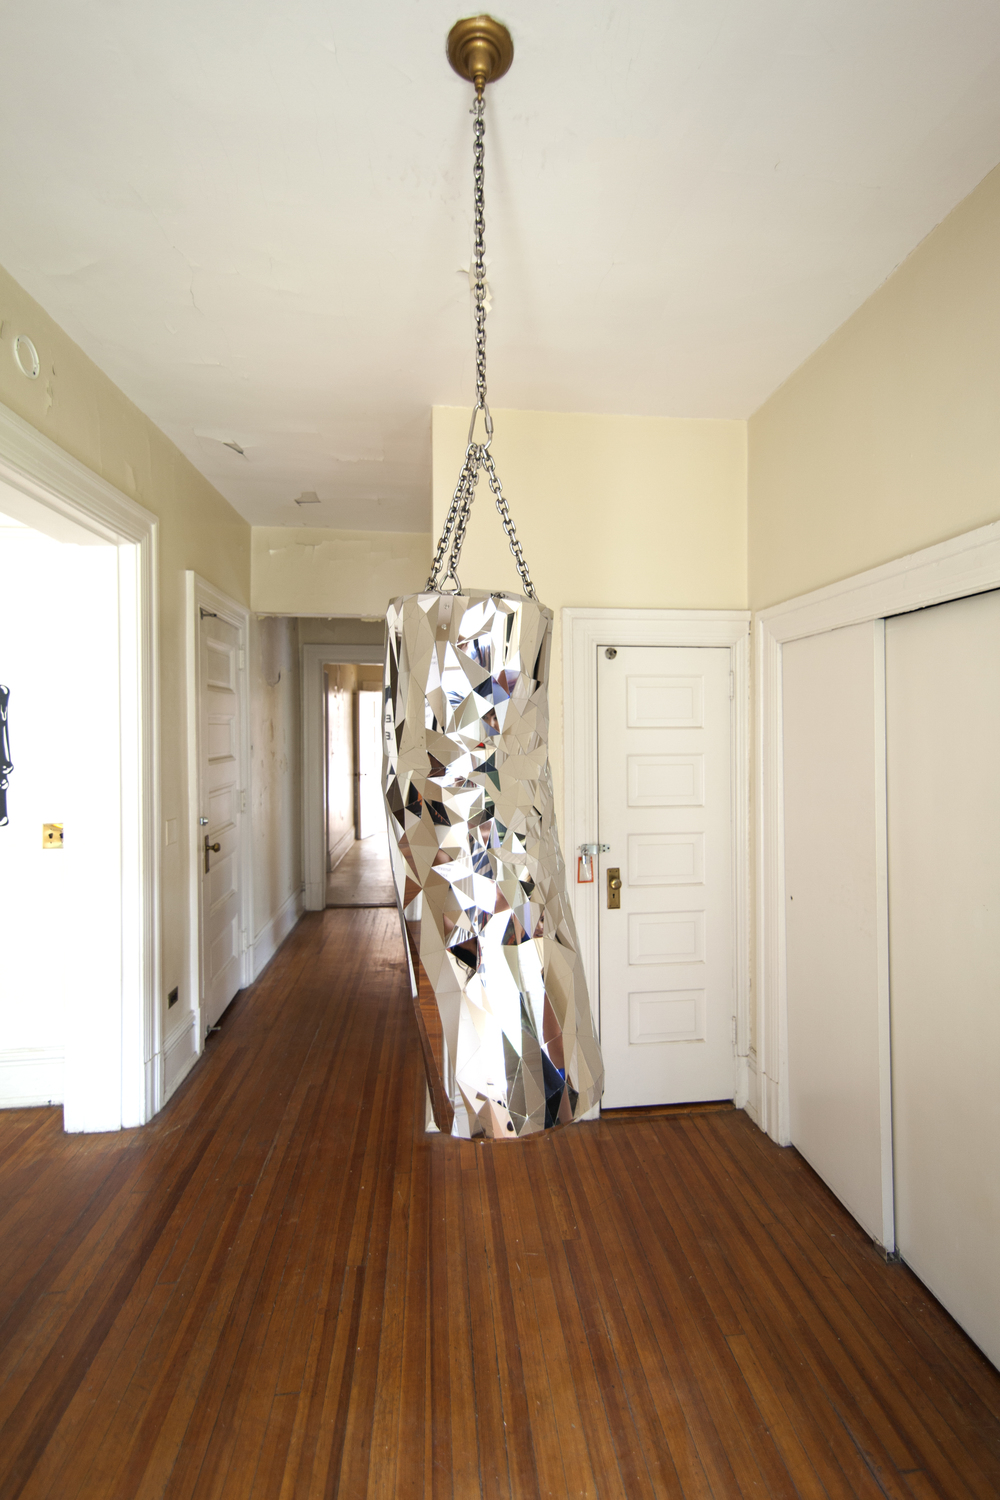 "Heavy Bag, 2015, Mirror polished stainless steel, 40"" tall (chain length variable) x 15"" diameter"